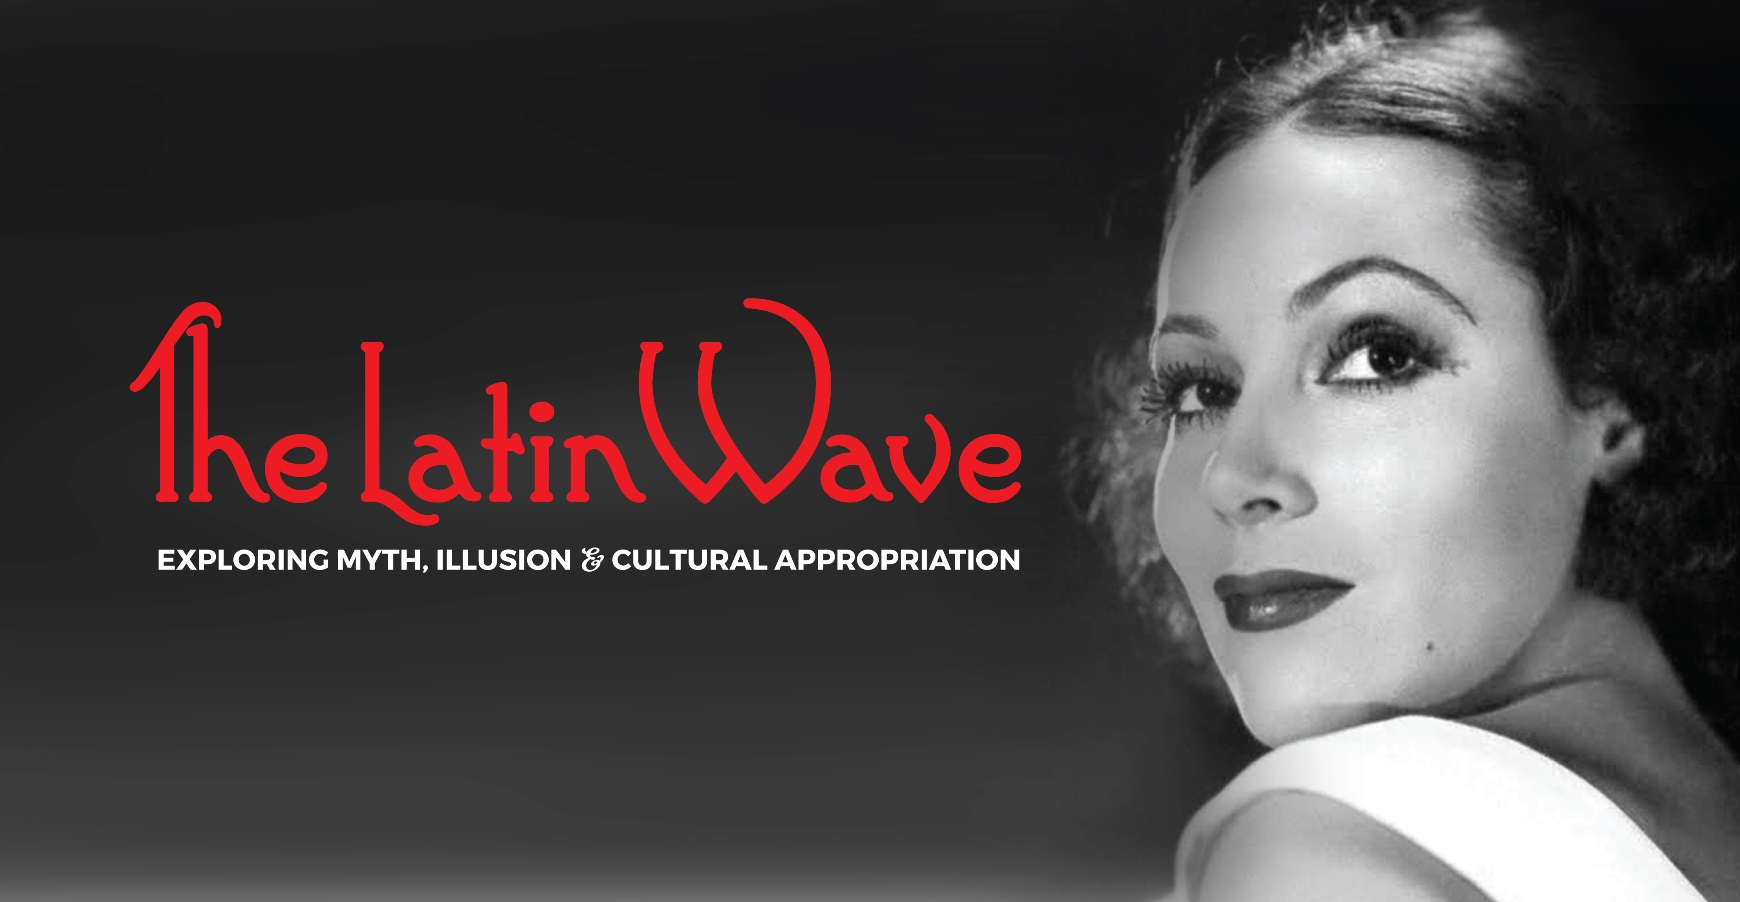 The Latin Wave Mission Playhouse WEB.jpg